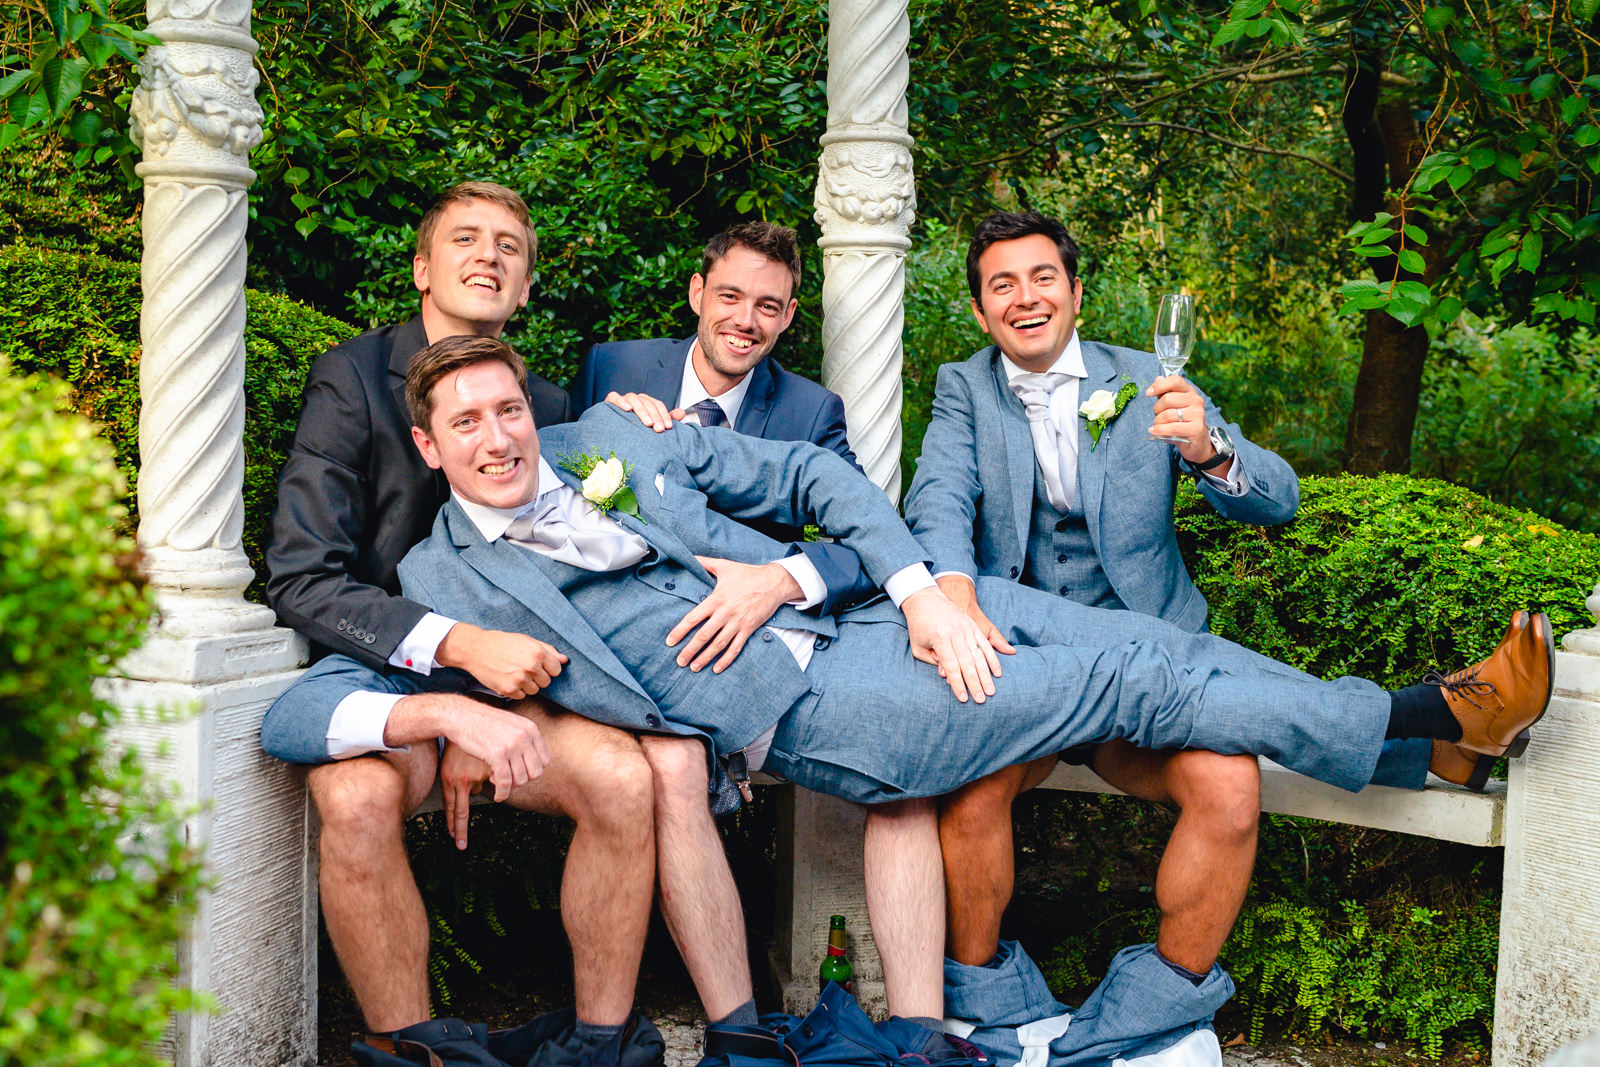 Relaxed wedding, Funny groomsmen photo, The Dignums Photography, Unconventional Wedding, Alterative Wedding, Chilled out wedding, simple wedding, quirky wedding inspiration, wedding planning, unique wedding